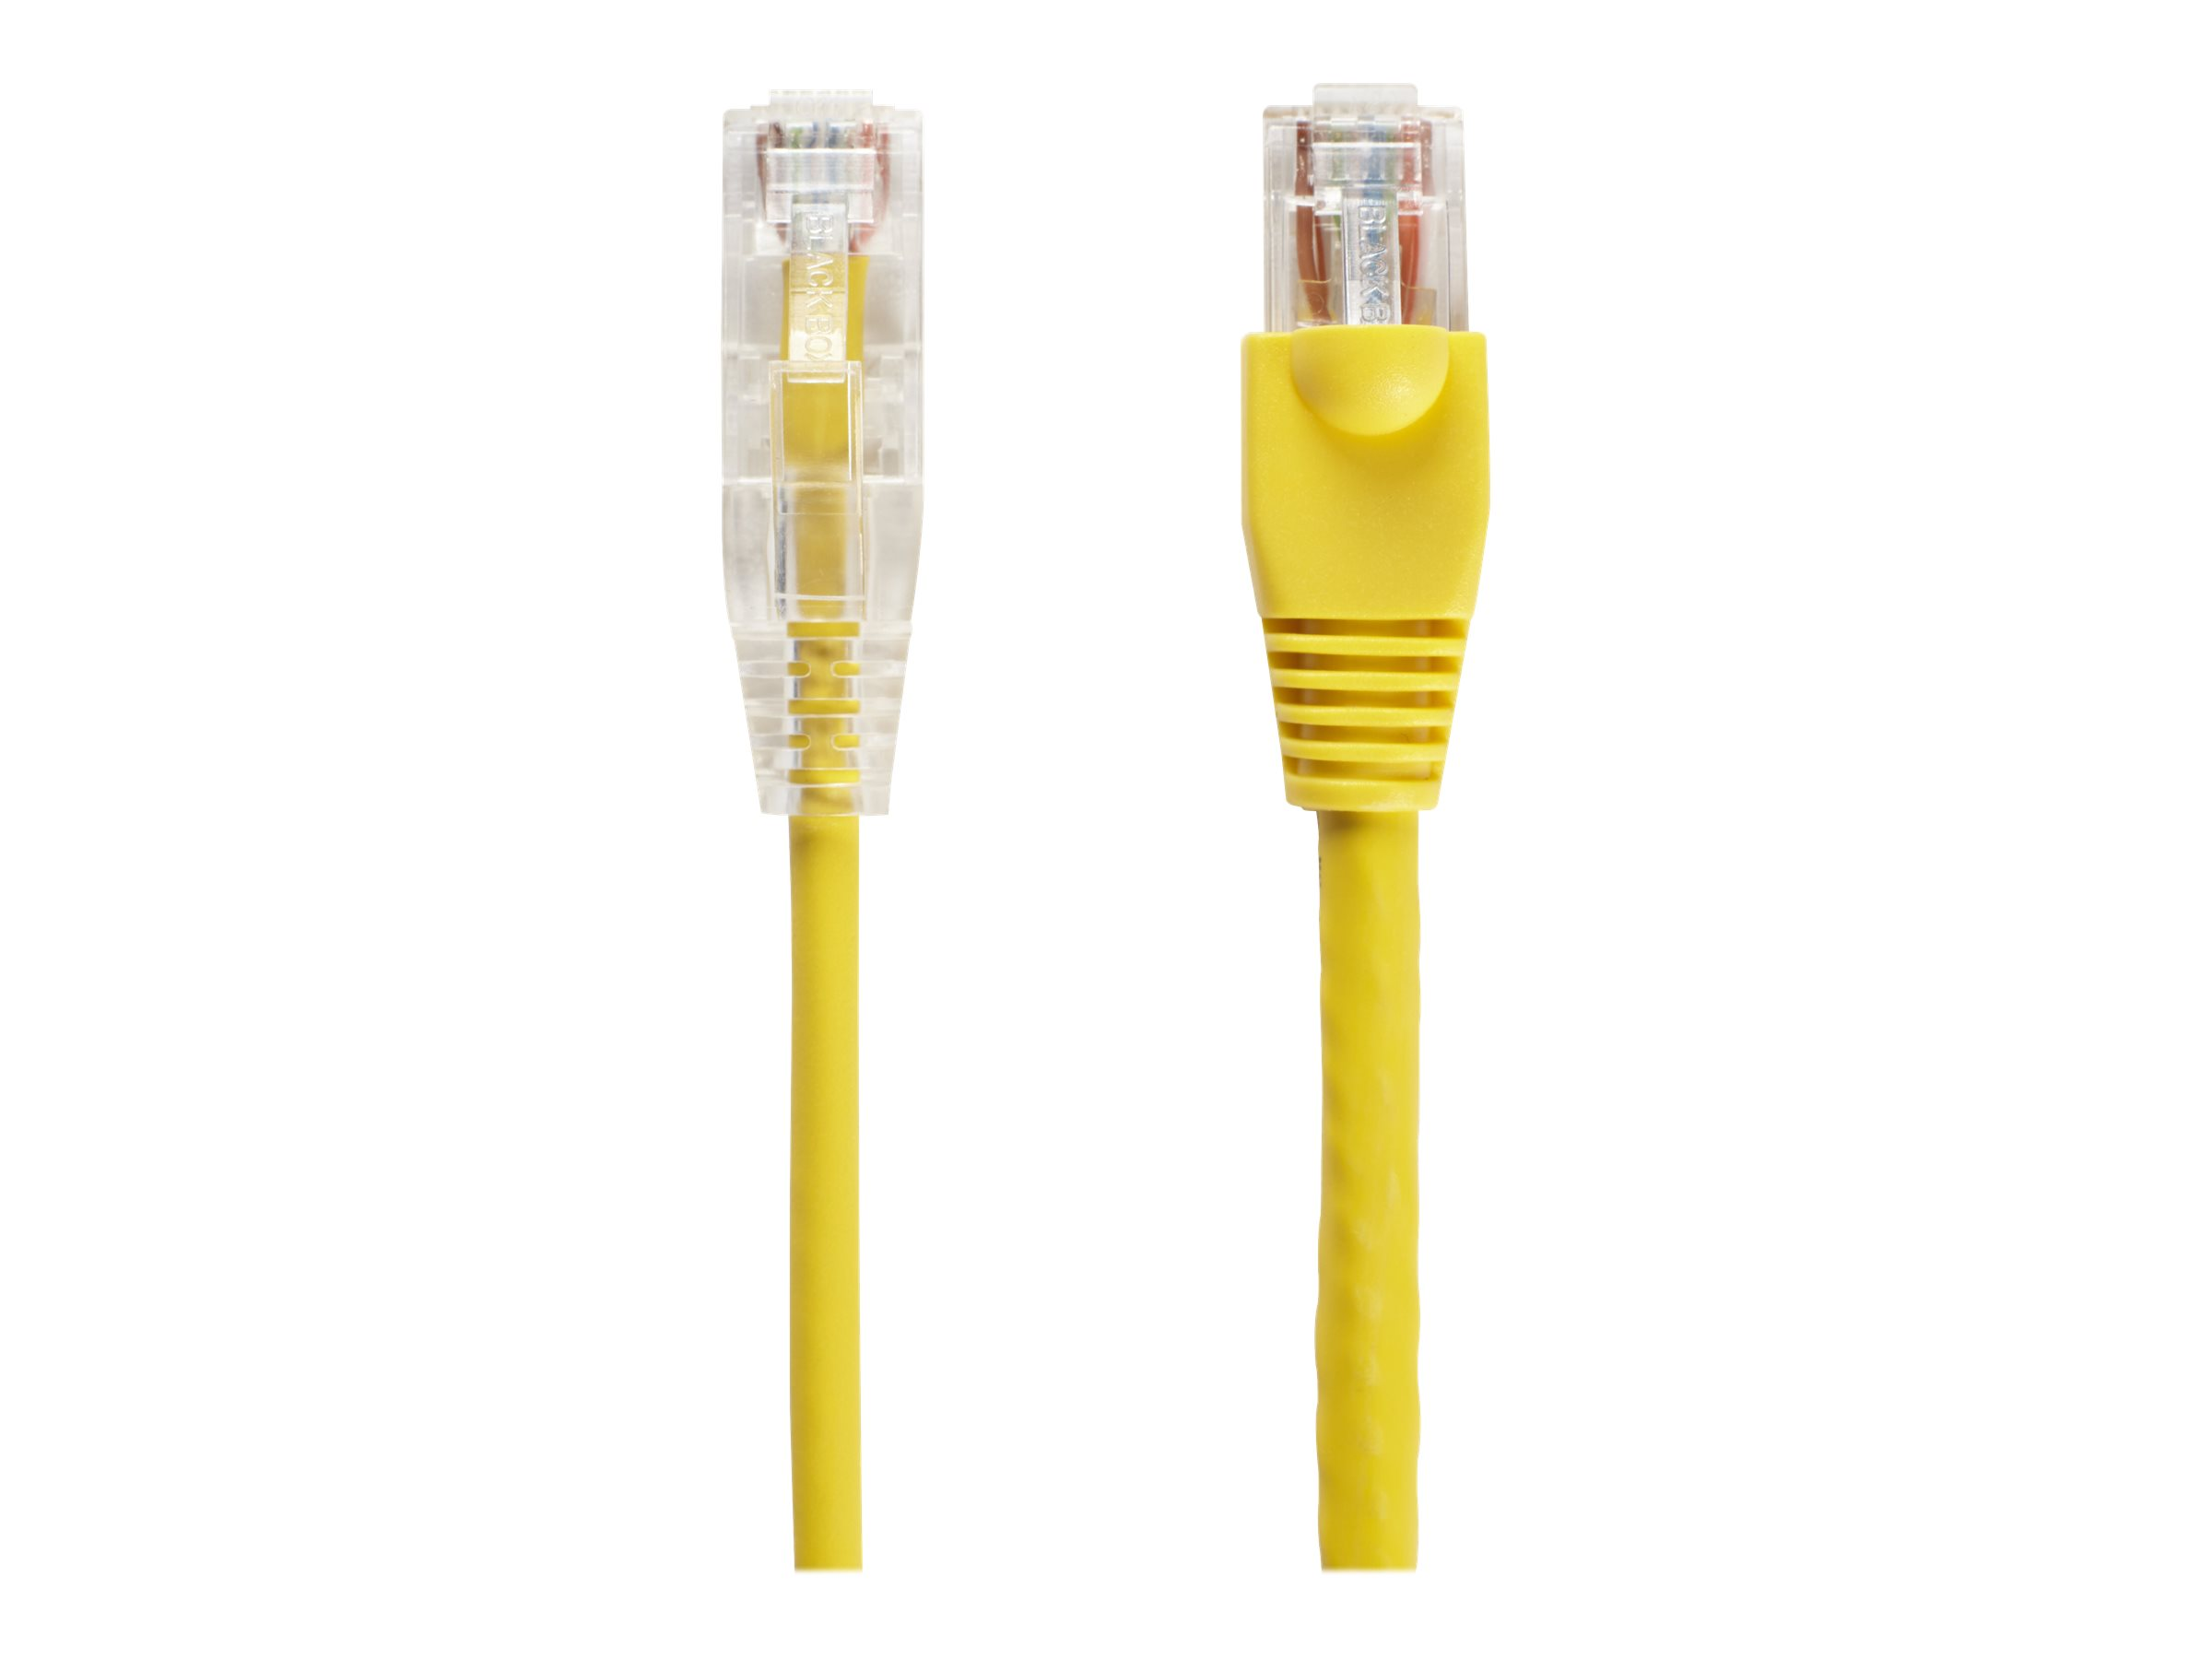 Black Box Slim-Net patch cable - 91 cm - yellow